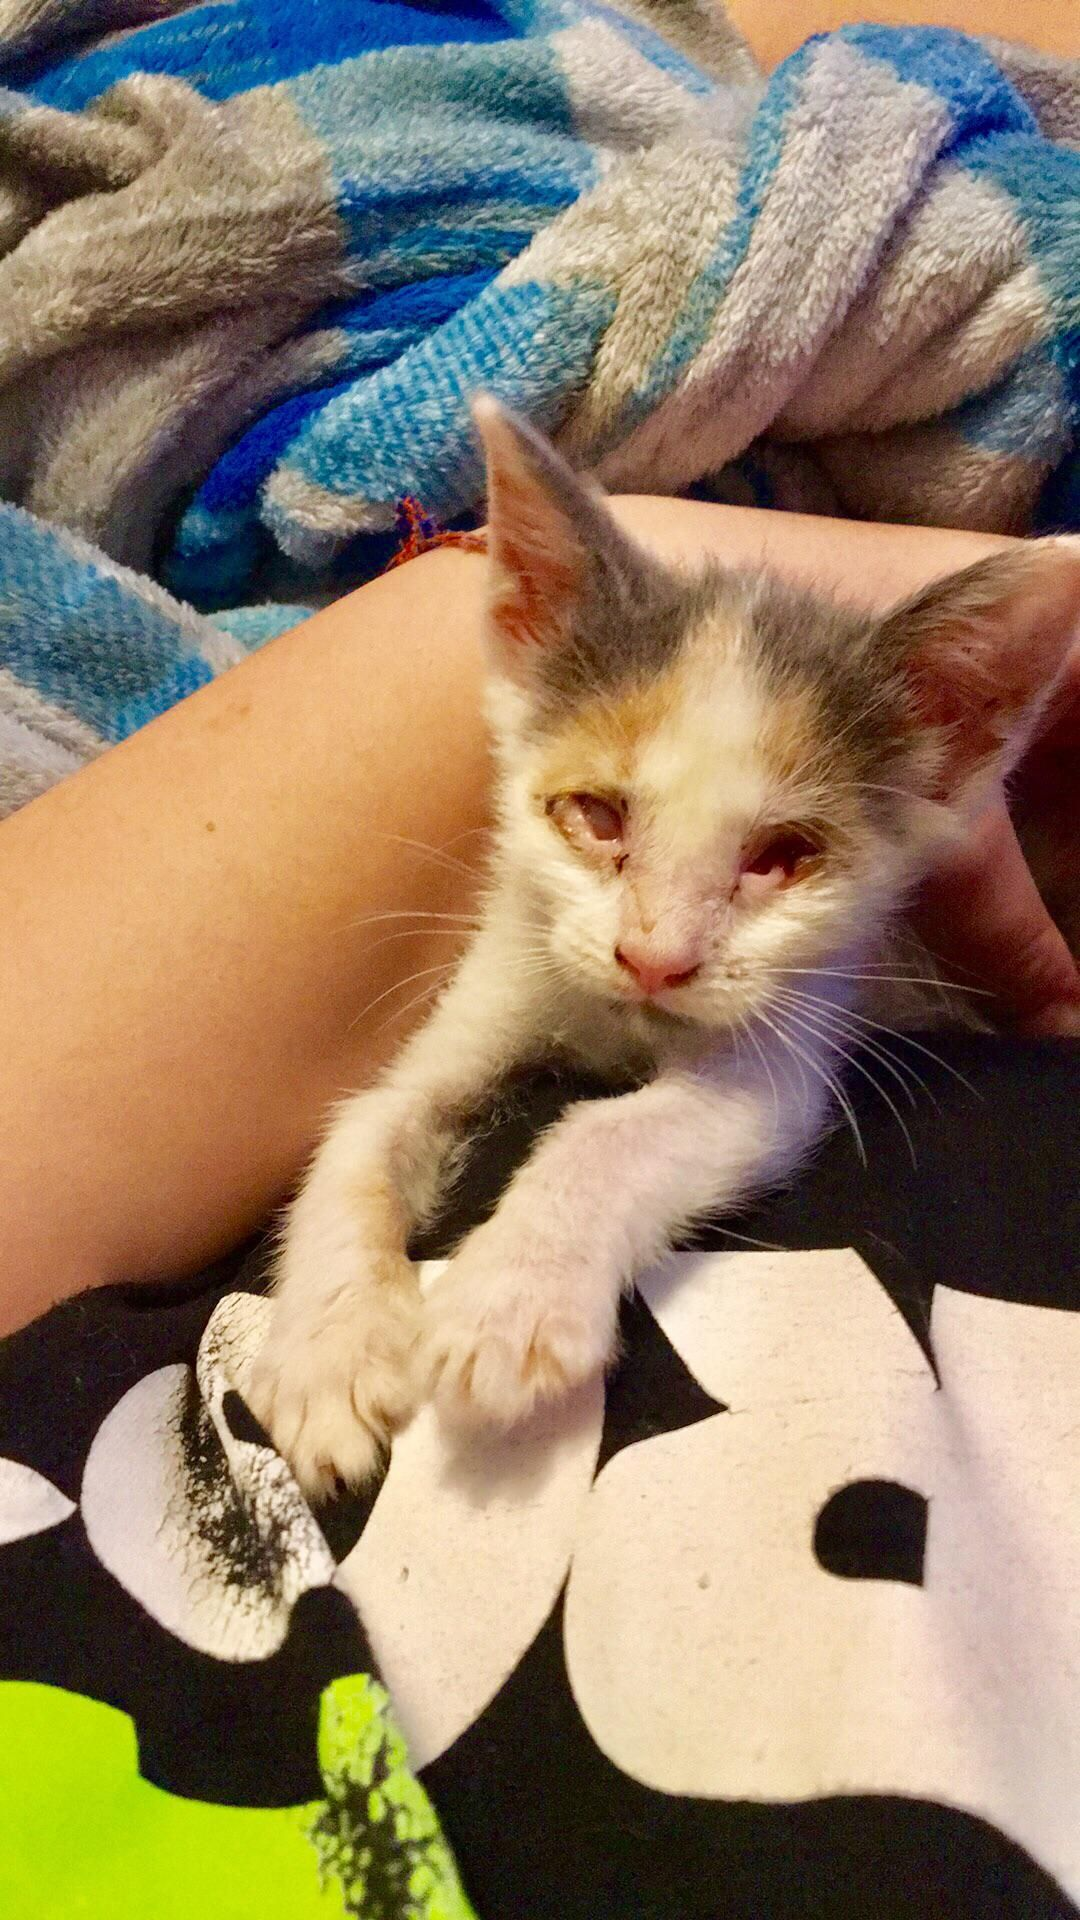 I M Fostering A Little Girl Who S Eyes Never Fully Developed But She Acts Just Like Any Other Crazy Kitten Cute Animals Kittens